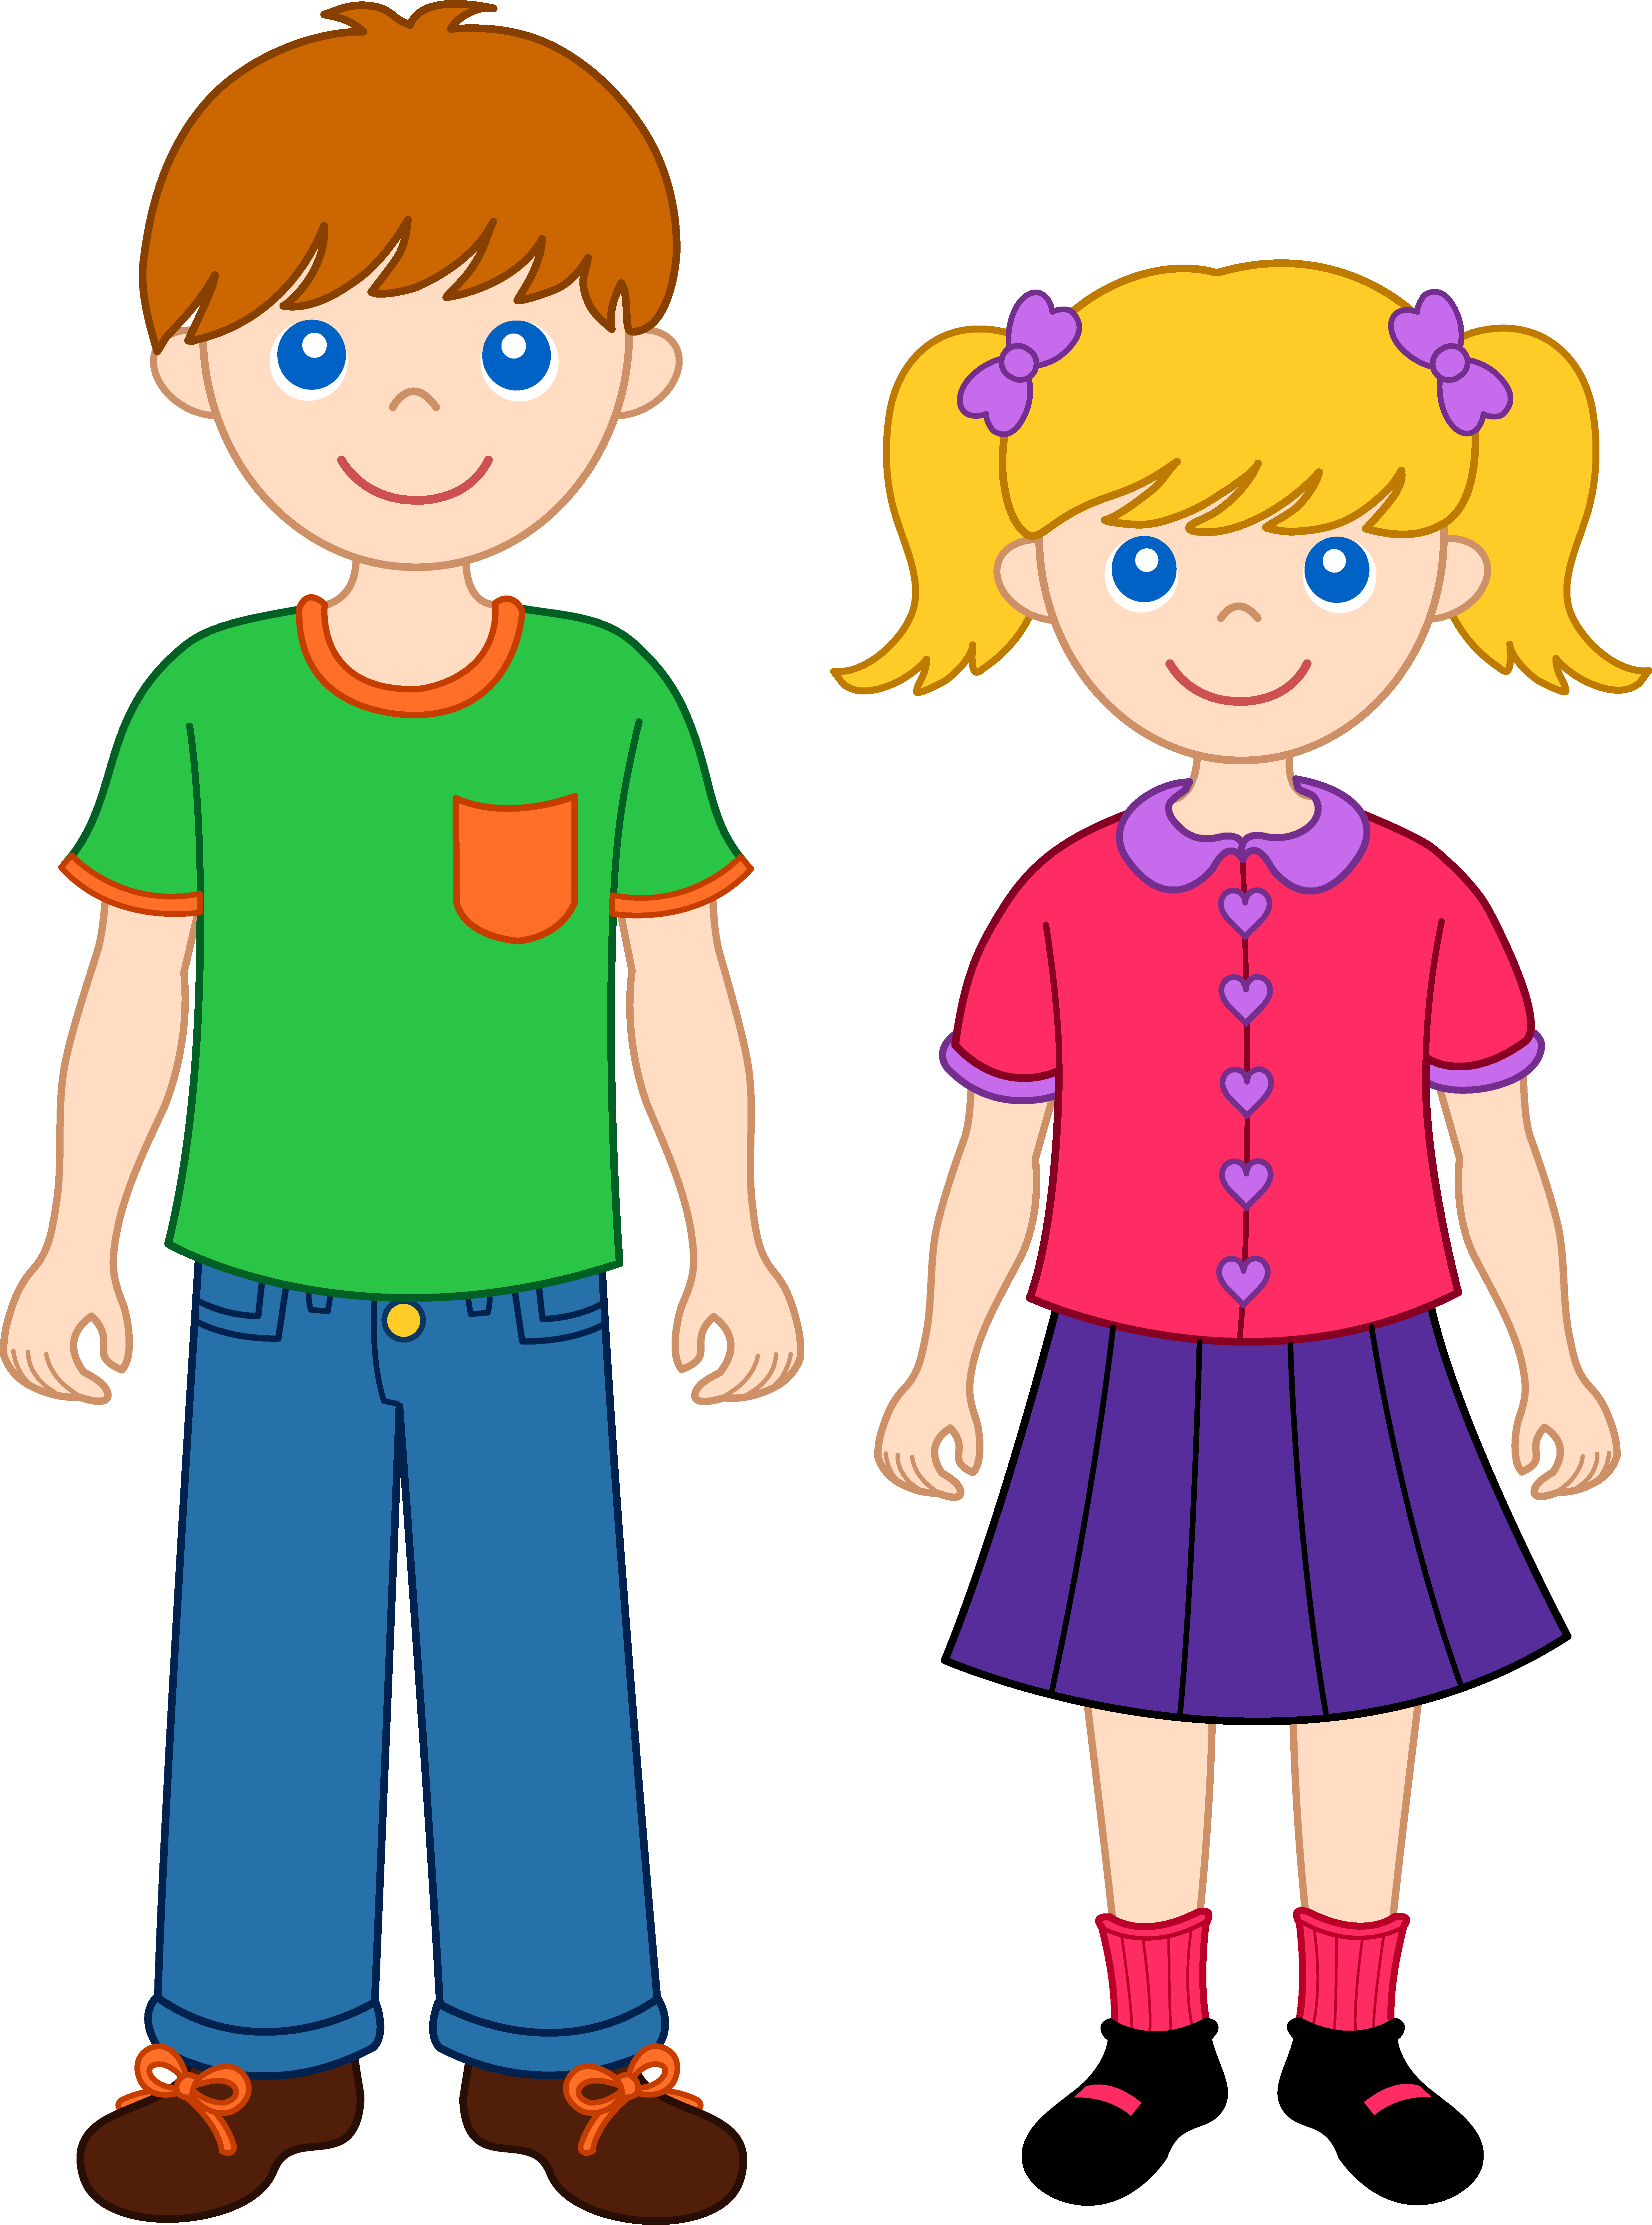 Clipart of a brother clipart freeuse download 2 brothers clipart clipart images gallery for free download | MyReal clipart freeuse download